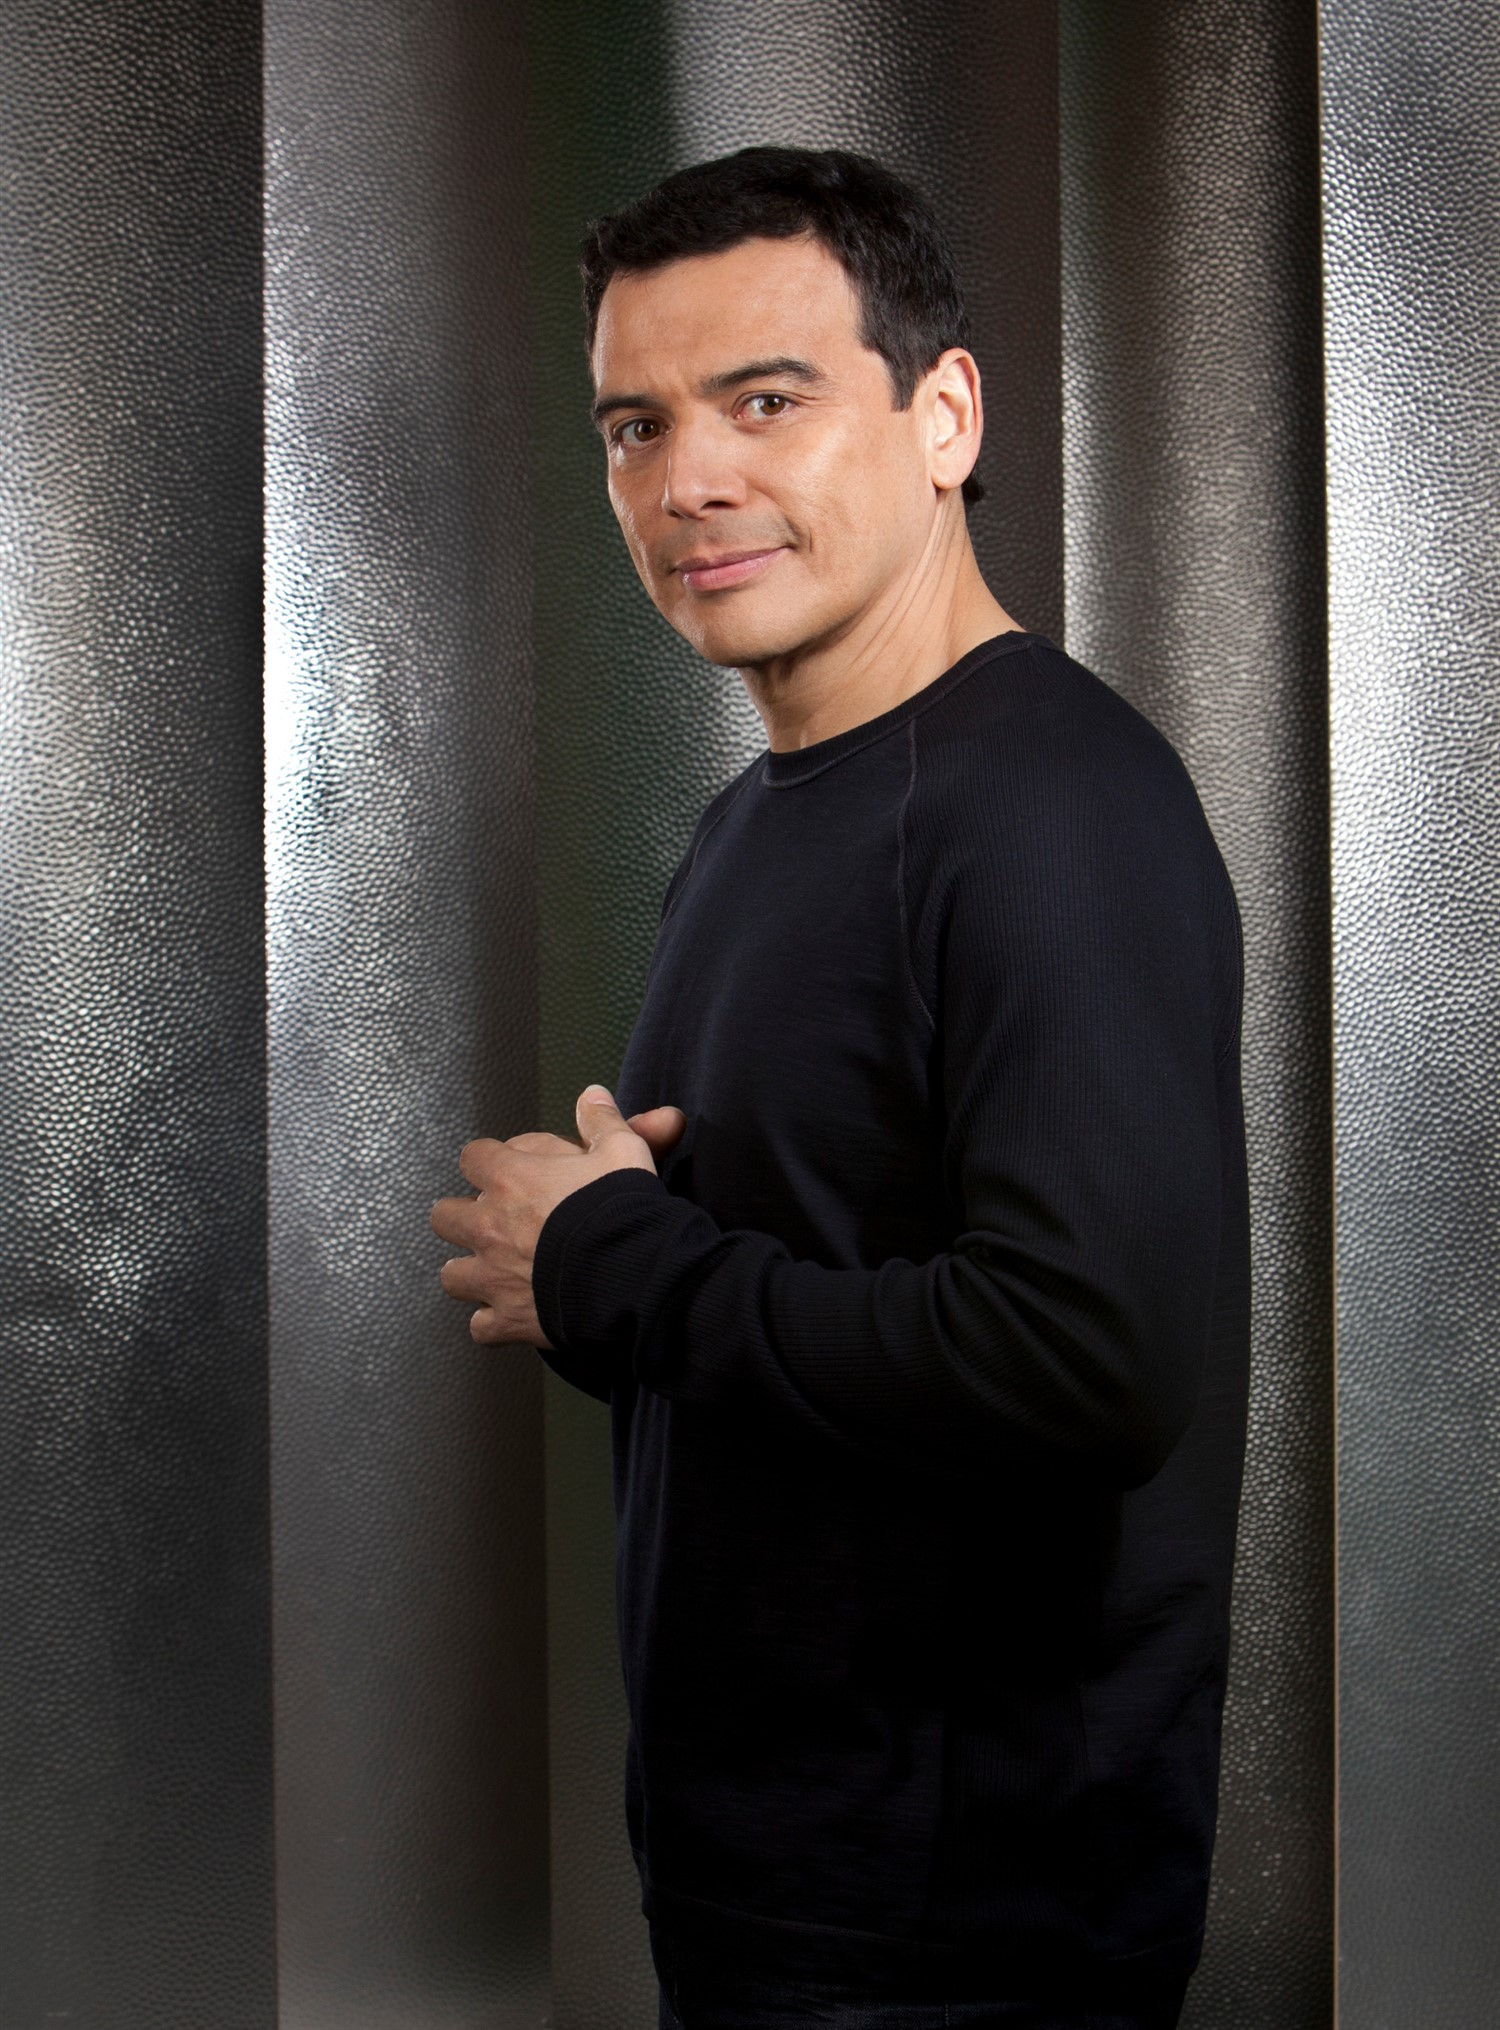 Carlos Mencia 9:30 Show Headliner on Jan 11, 21:30@Funny Stop Comedy Club - Buy tickets and Get information on Funny Stop funnystop.online